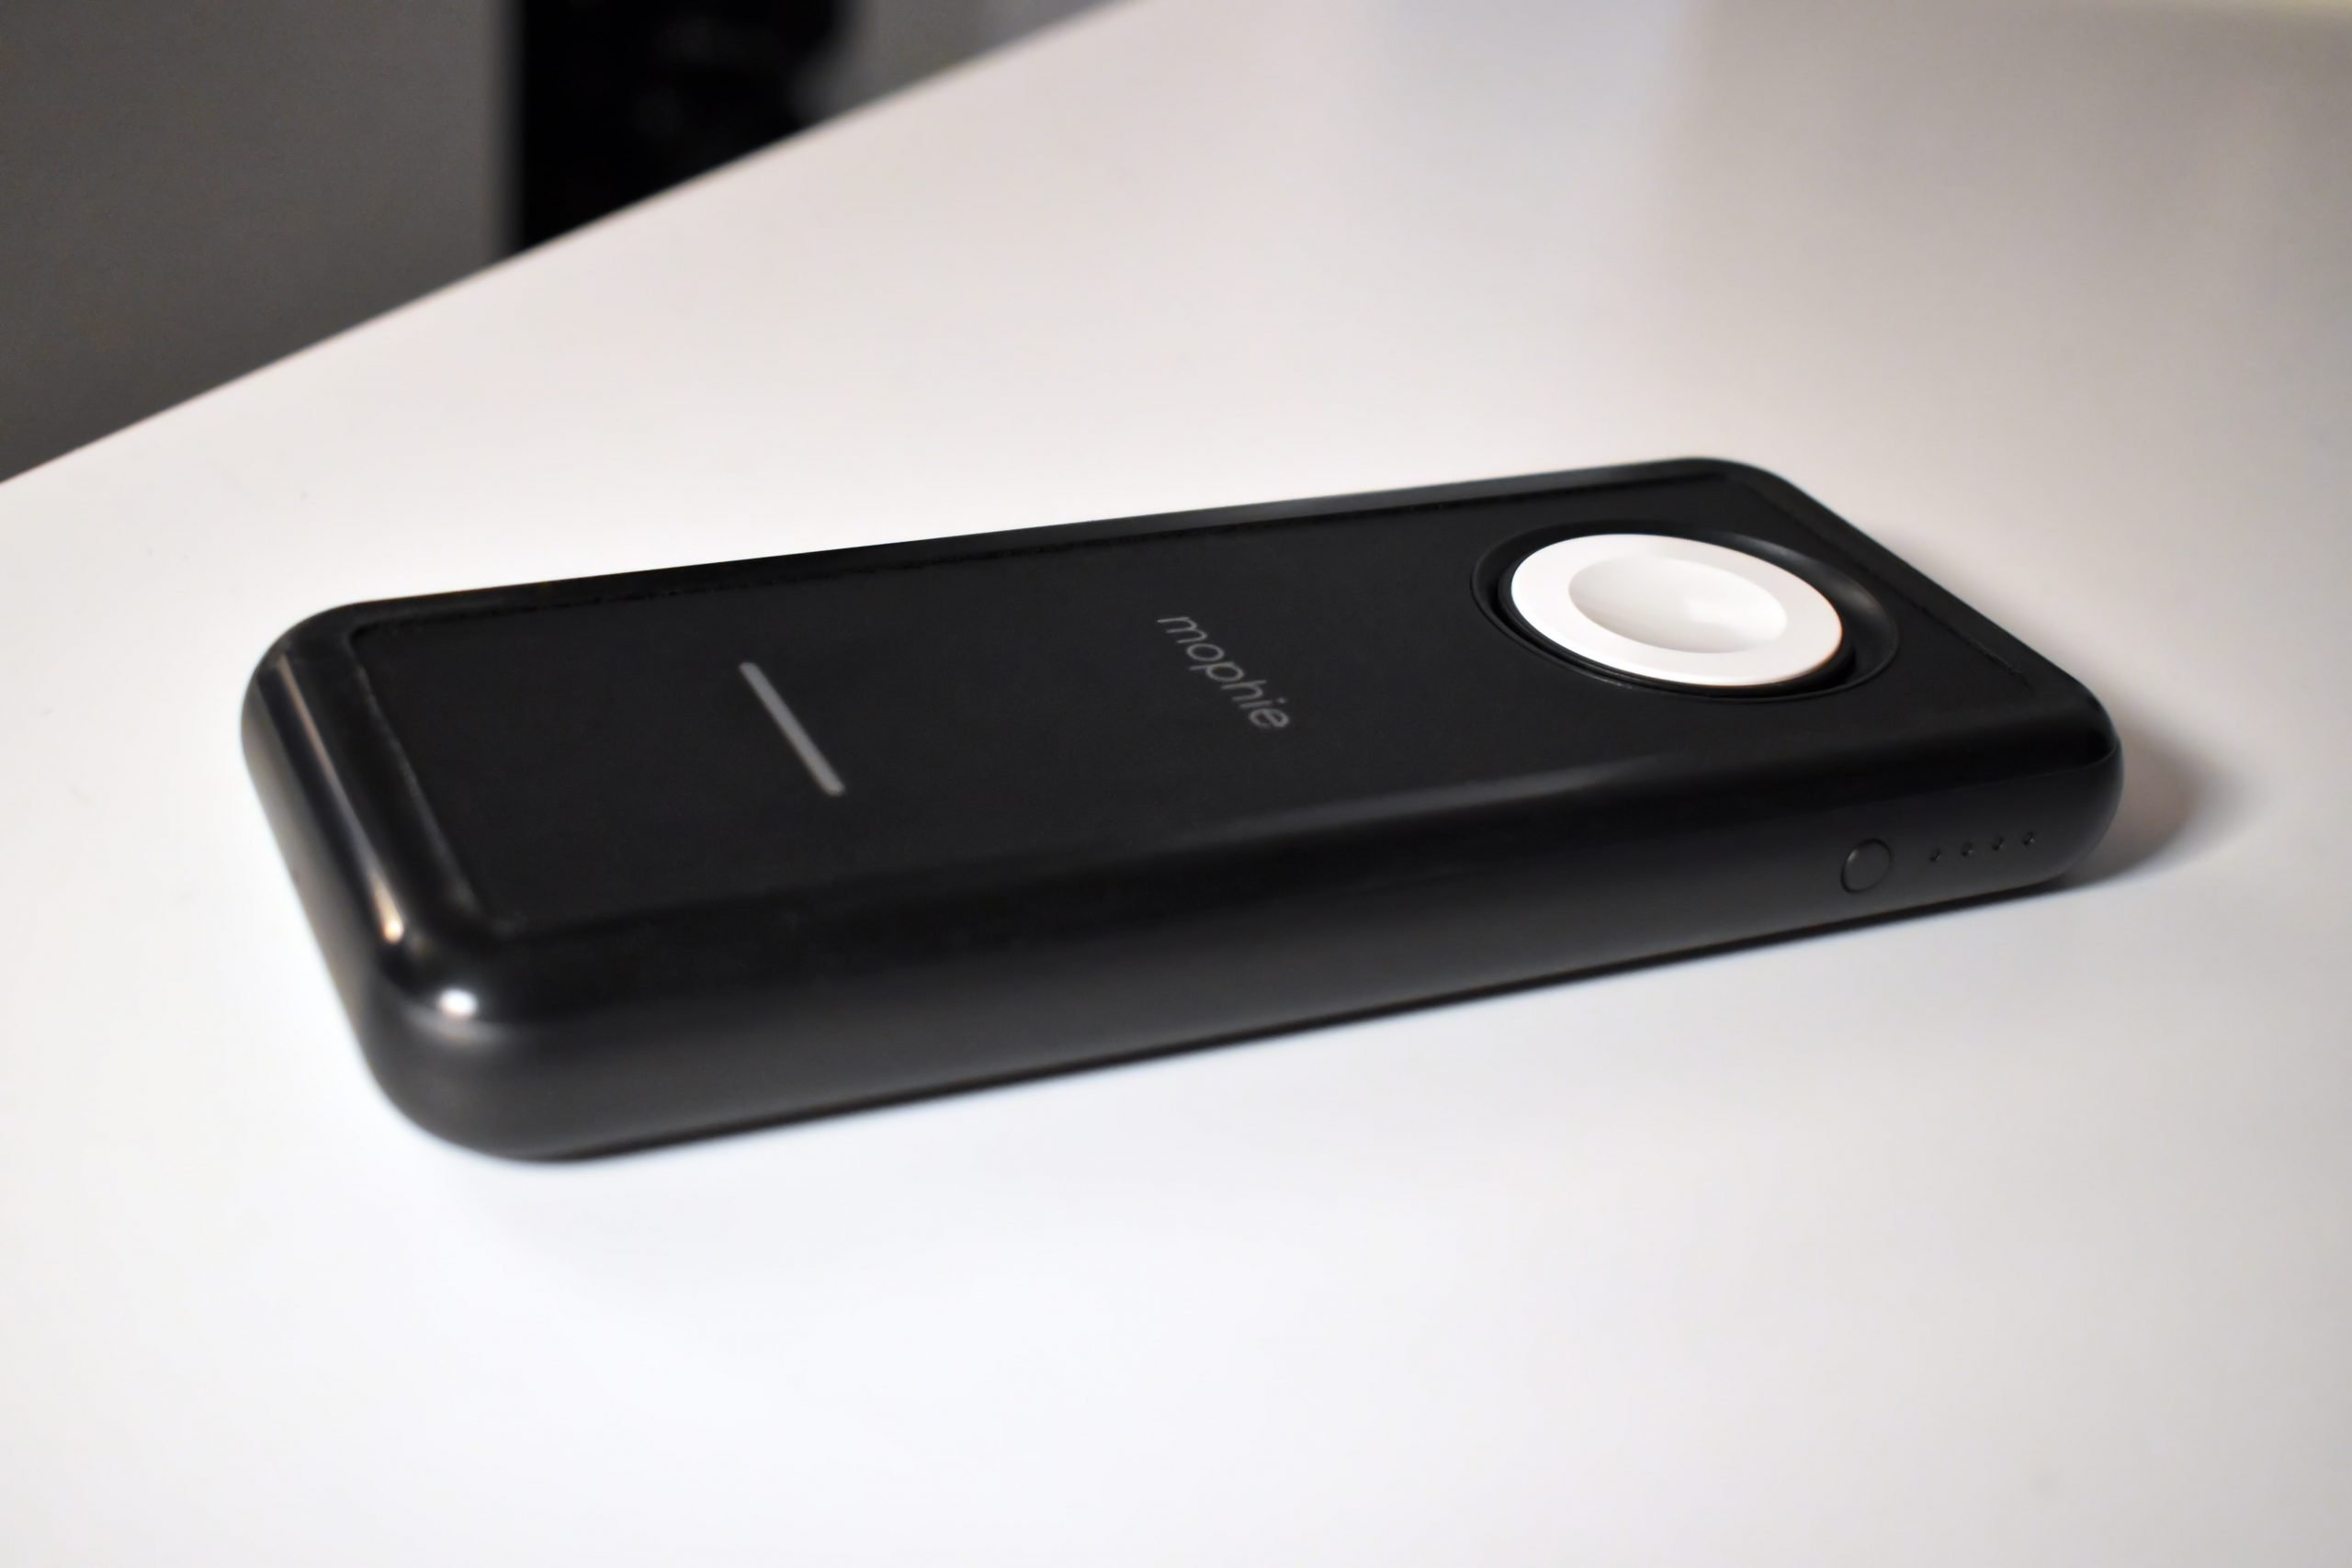 Review Mophie Charging Powerstation All In One A free inside look at company reviews and salaries posted anonymously by employees. review mophie charging powerstation